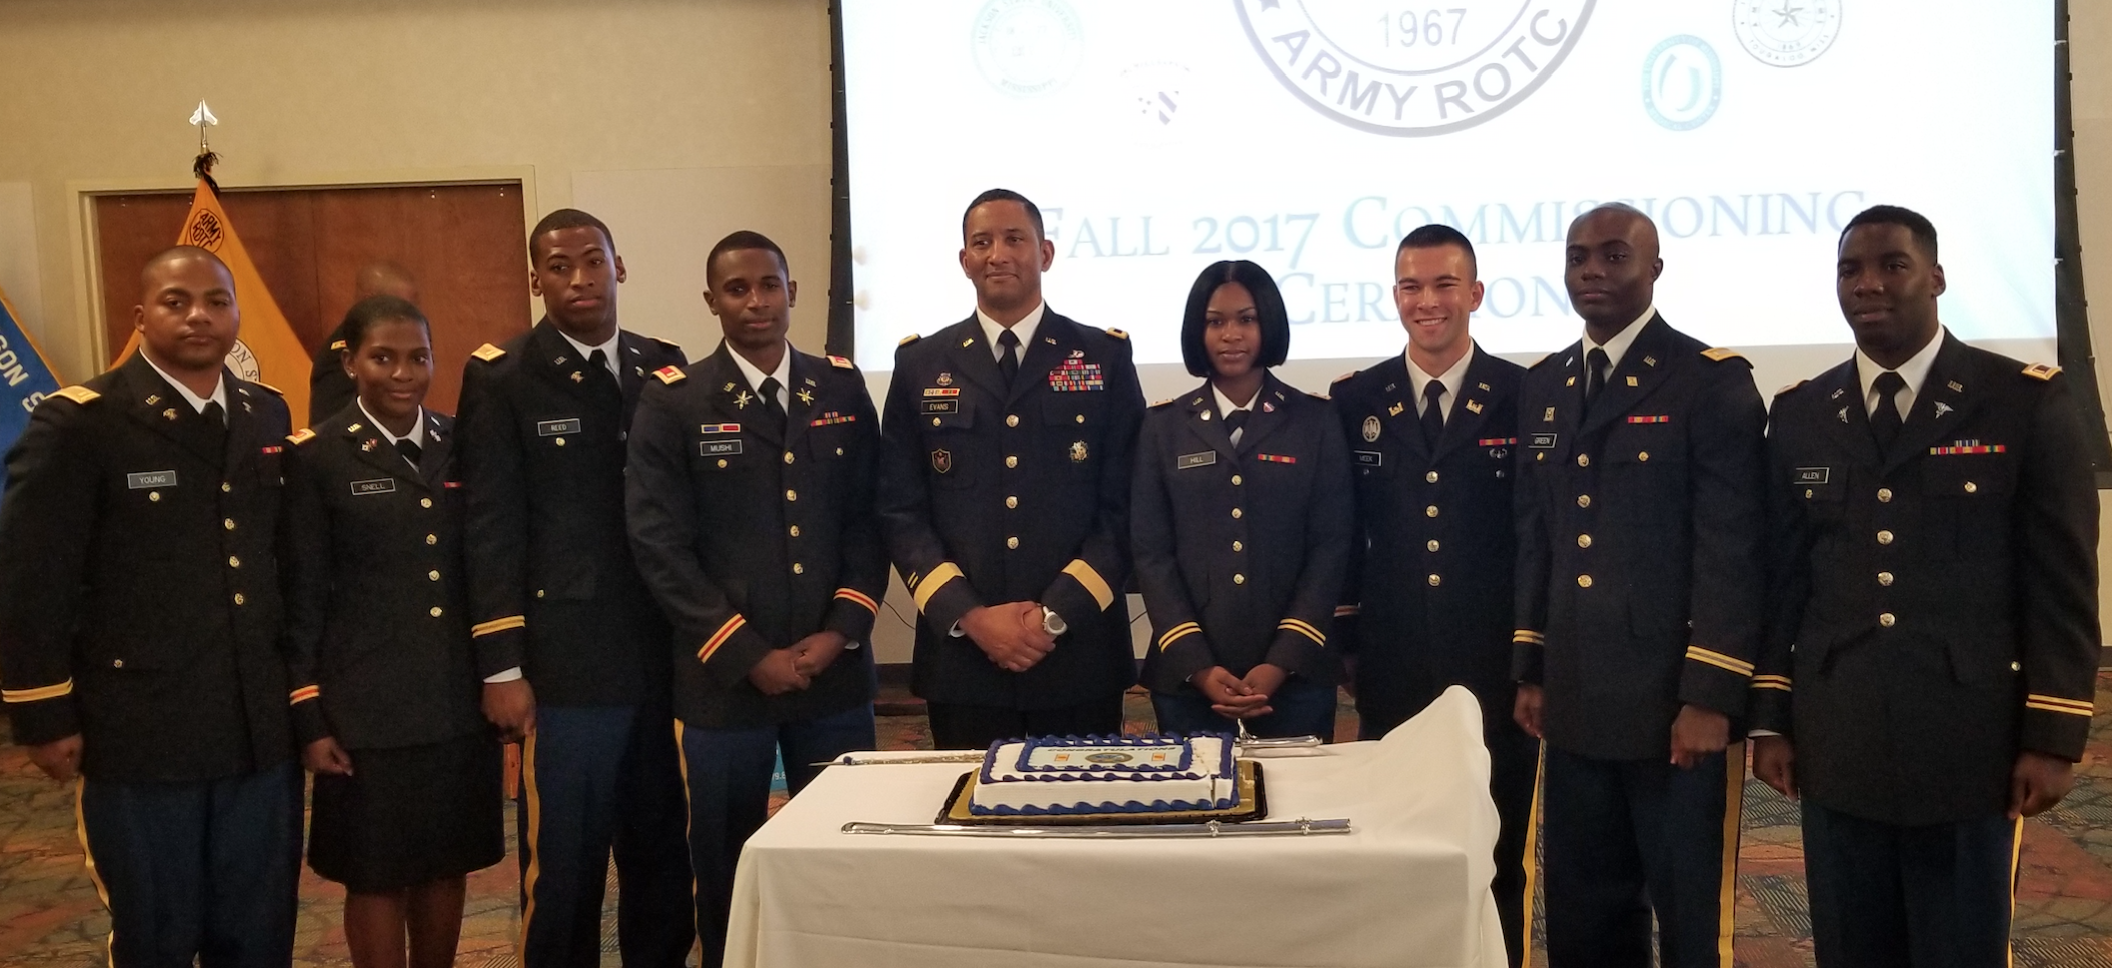 Major Gen. Jason T. Evans, center, was the keynote speaker for the commissioning and bar ceremony. He joins the newly his new fellow officers.